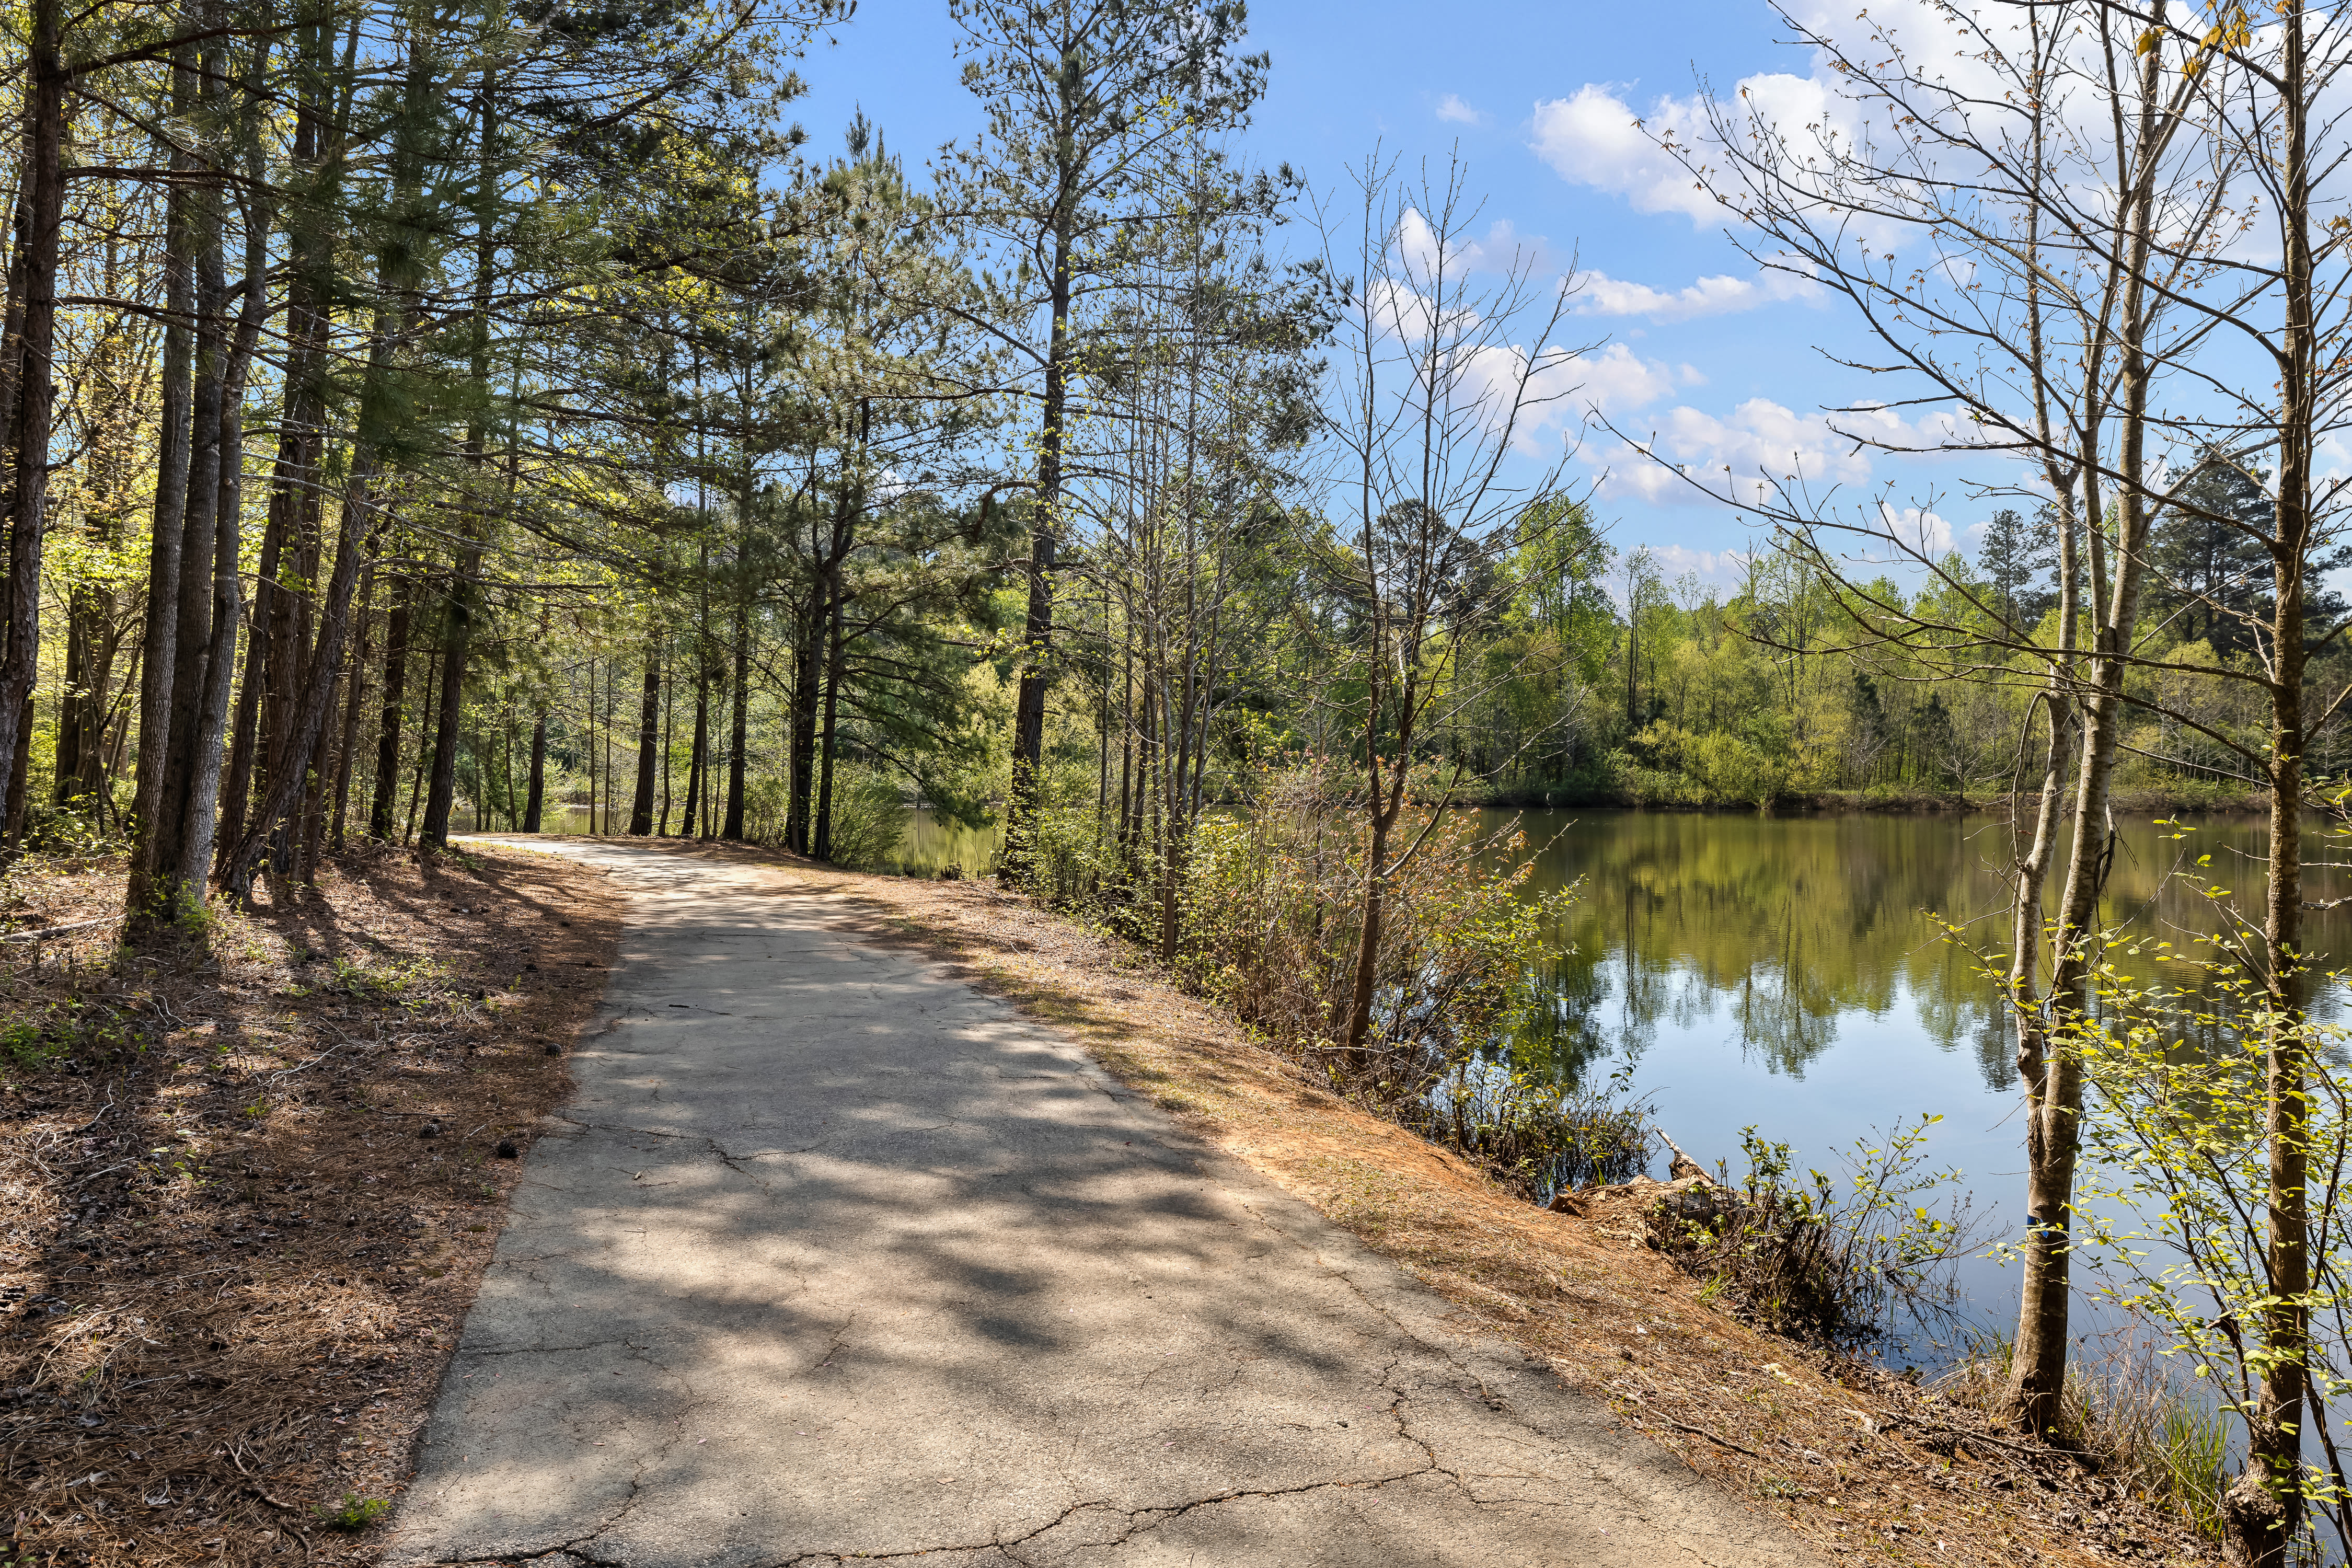 Relaxing nature trail along water's edge near The Claiborne at Newnan Lakes in Newnan, GA